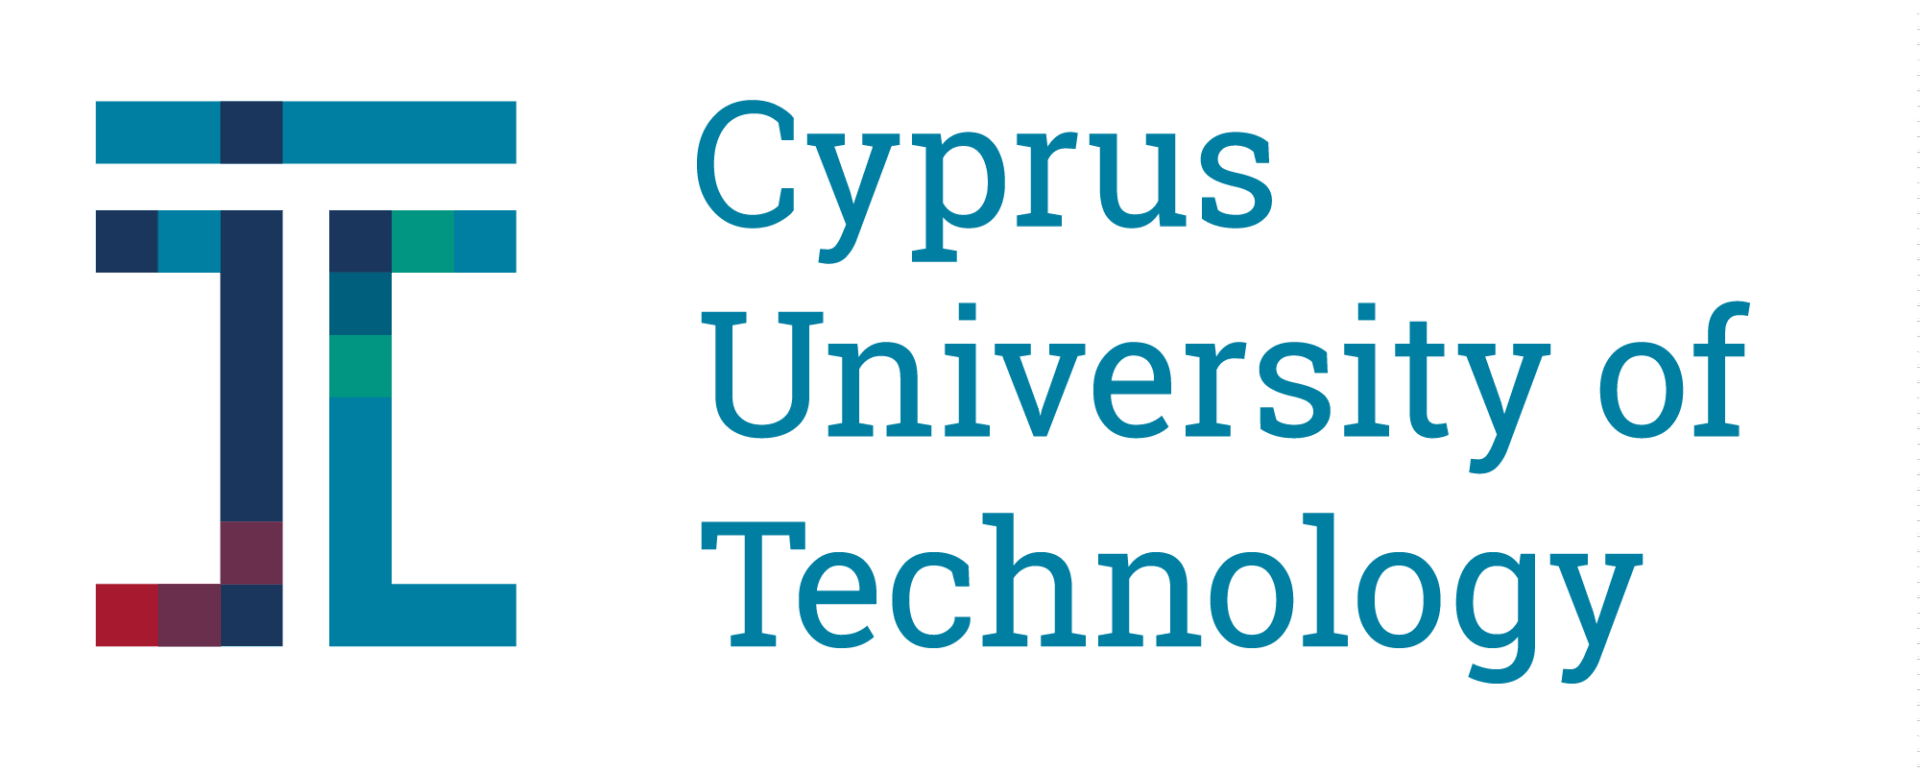 Robotics, Control, and Decision Systems DIH – Cyprus University of Technology